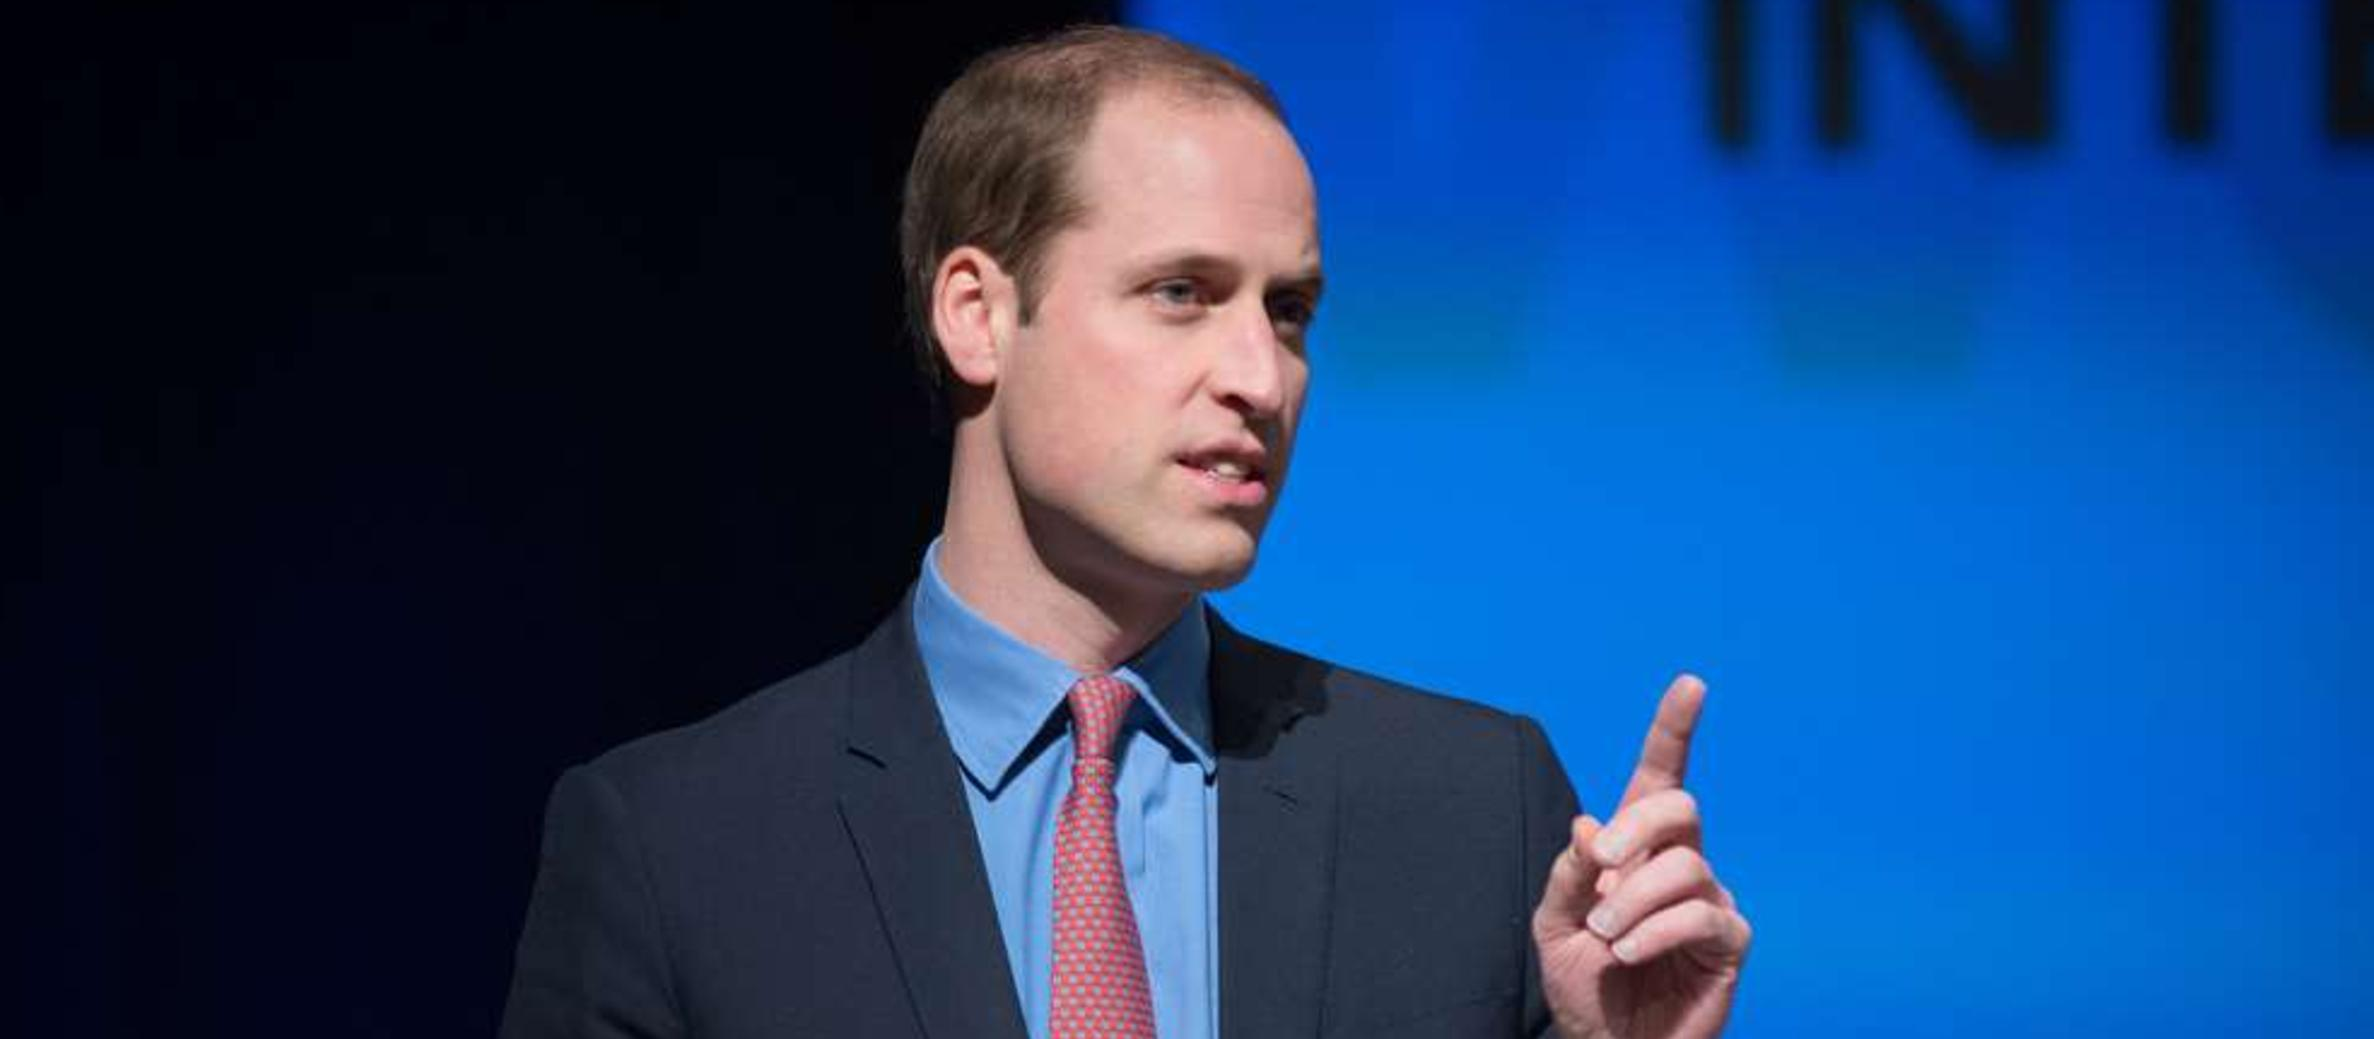 UK: Prince William praises Jewish unity